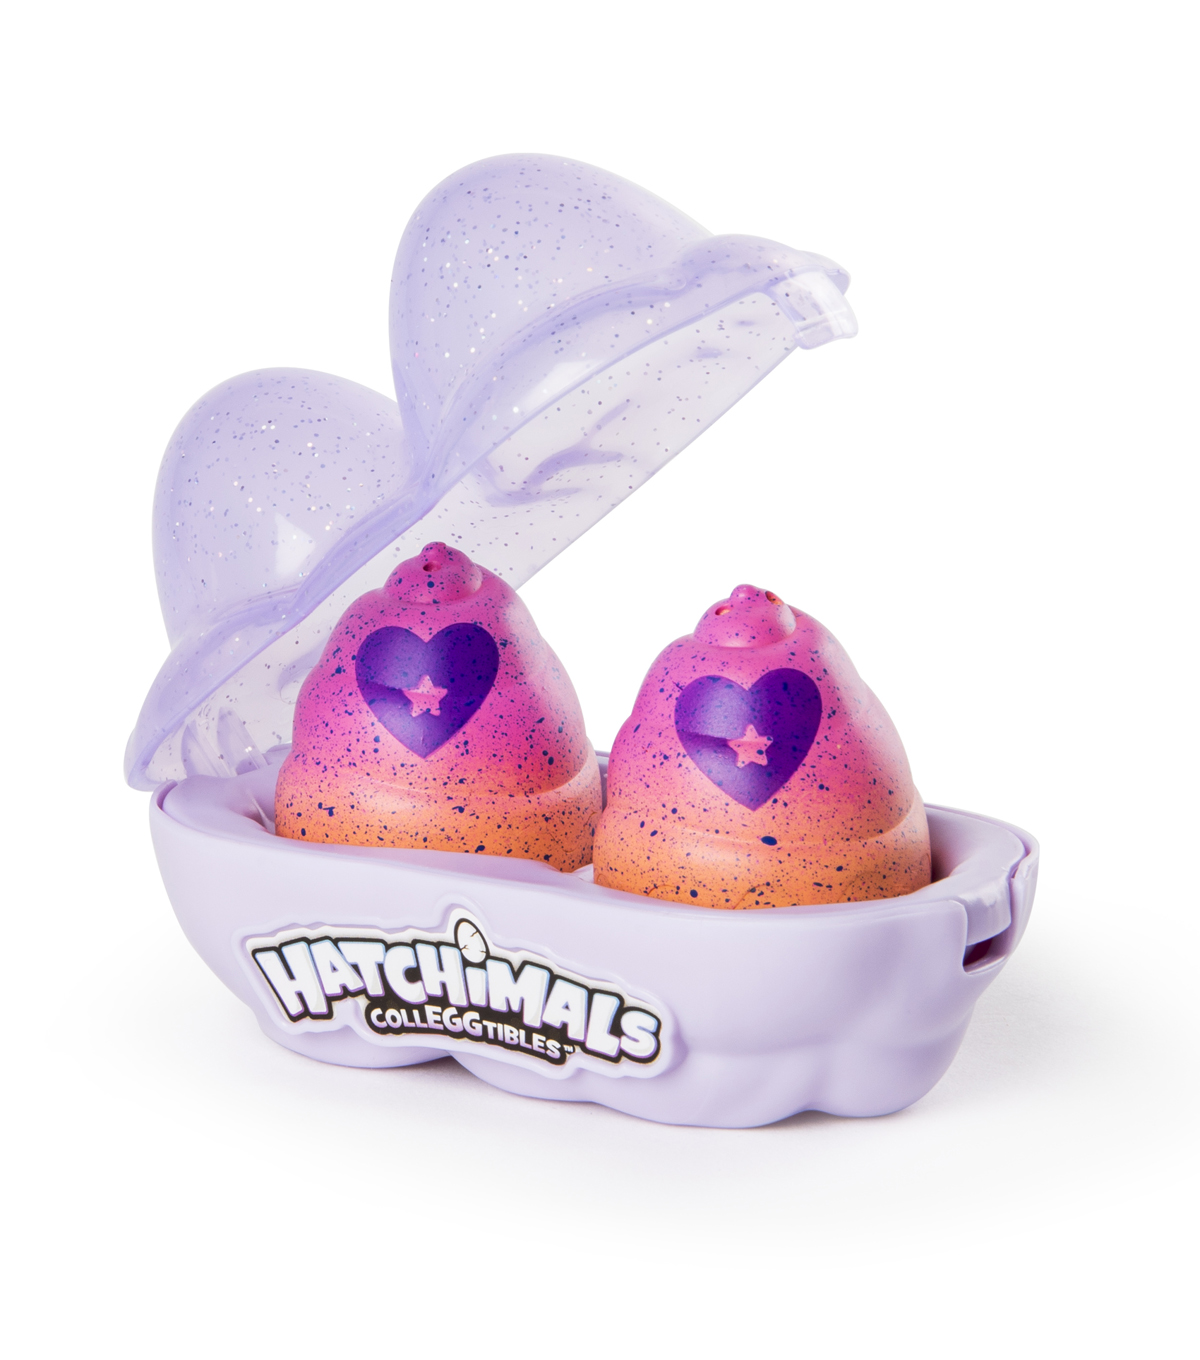 Hatchimals Colleggtible 4 Pack And Bonus